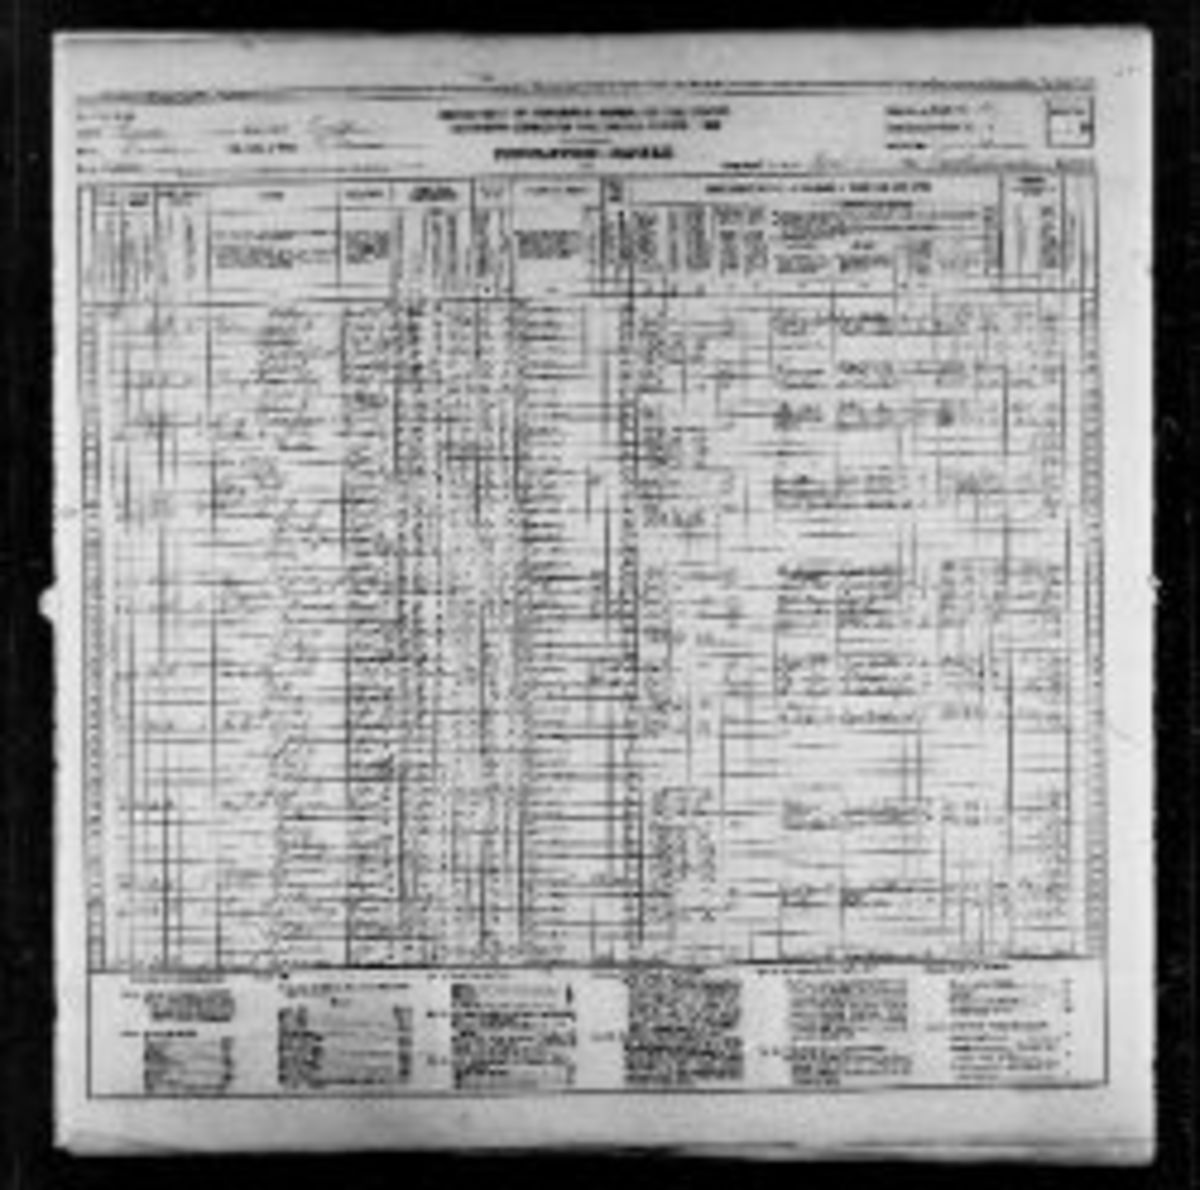 An example of a US Federal Census Enumeration Sheet